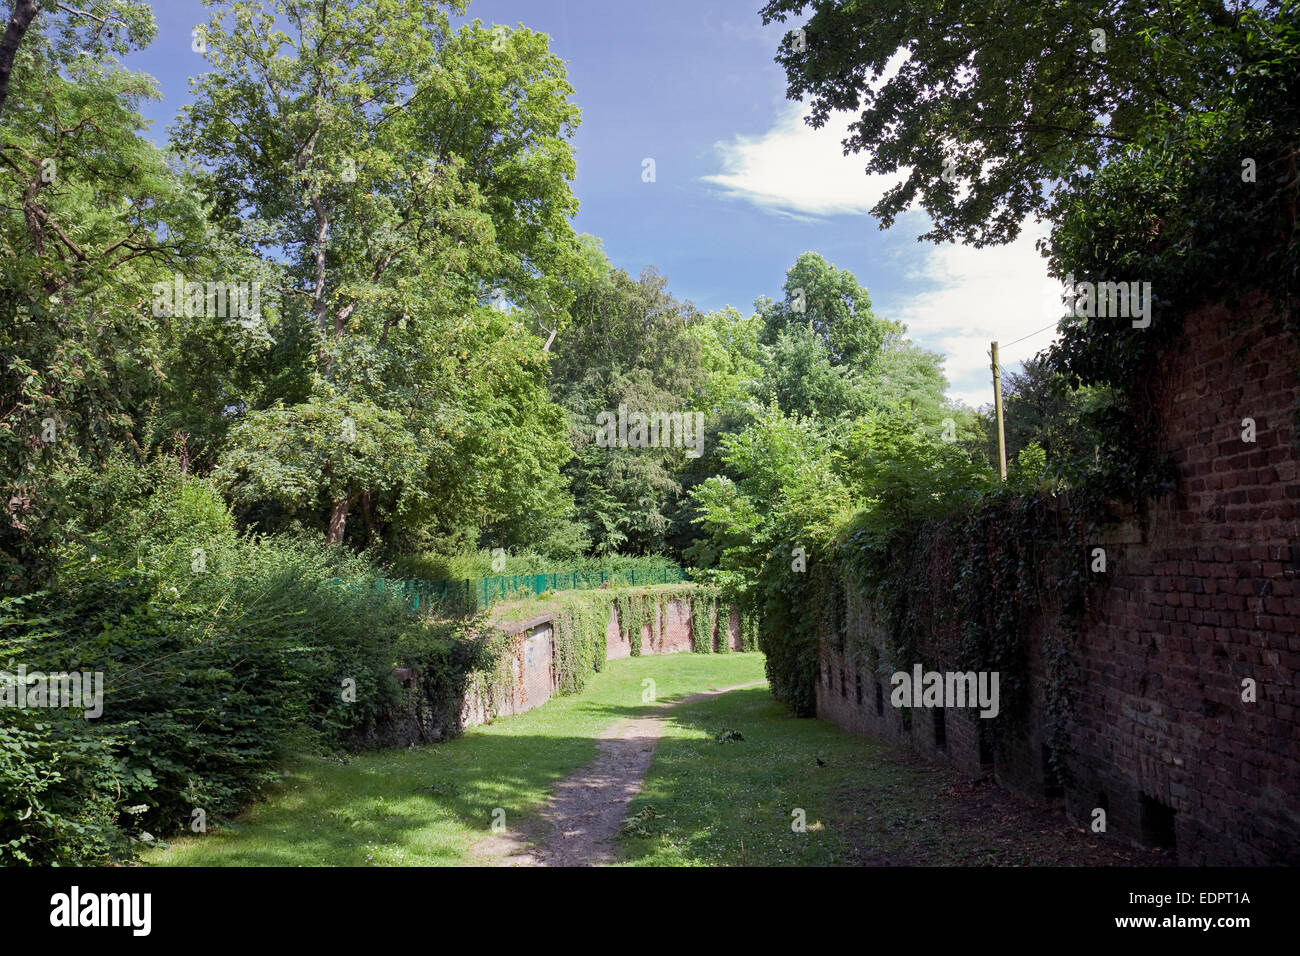 Remains of historic Prussian fortifications, Volksgarten, Cologne, Rhine-Westphalia, Germany - Stock Image